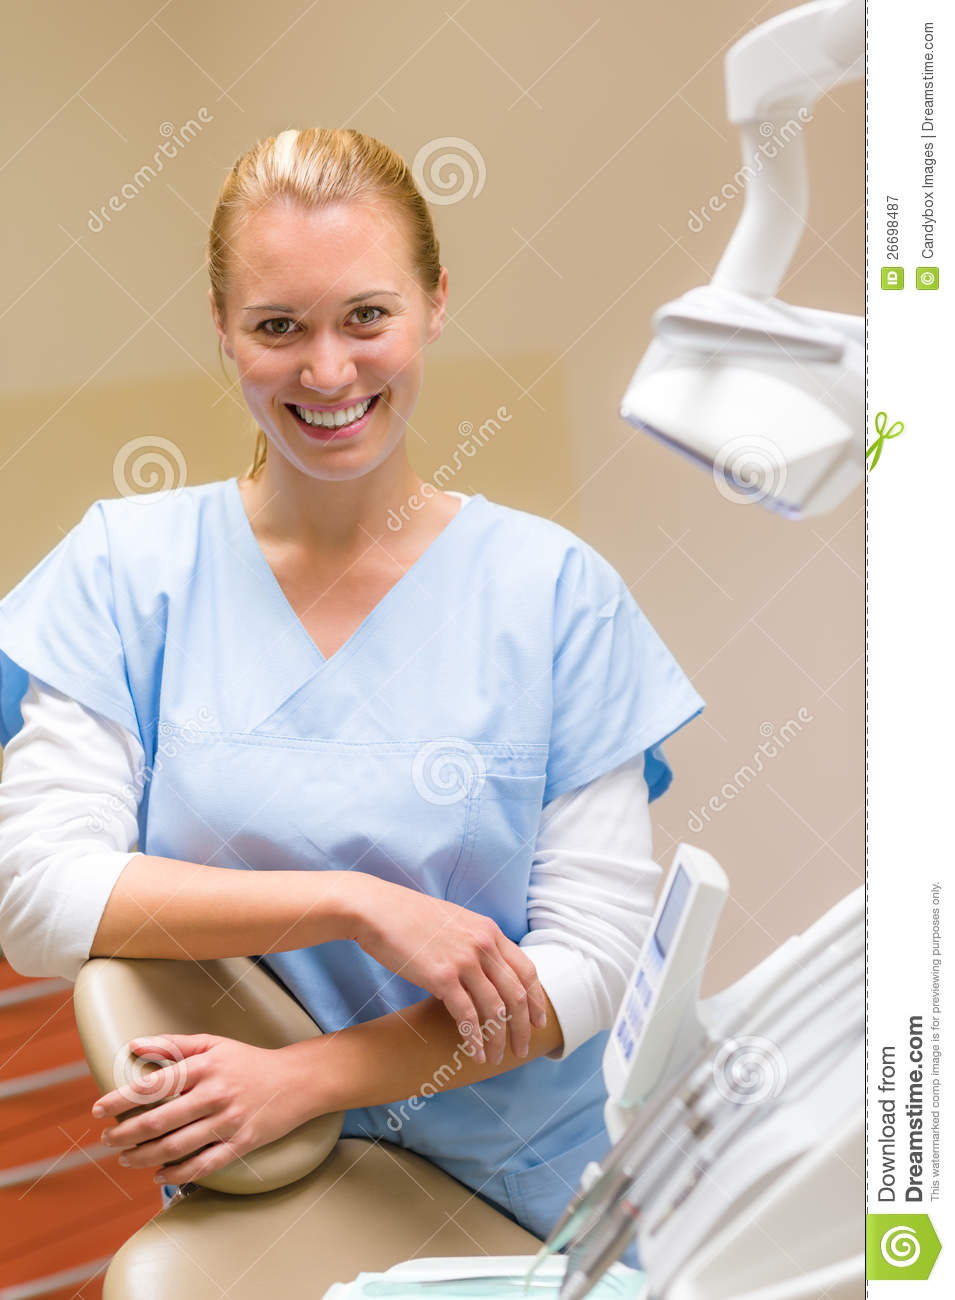 Smiling Dental Nurse In Surgery Office Royalty Free Stock ...